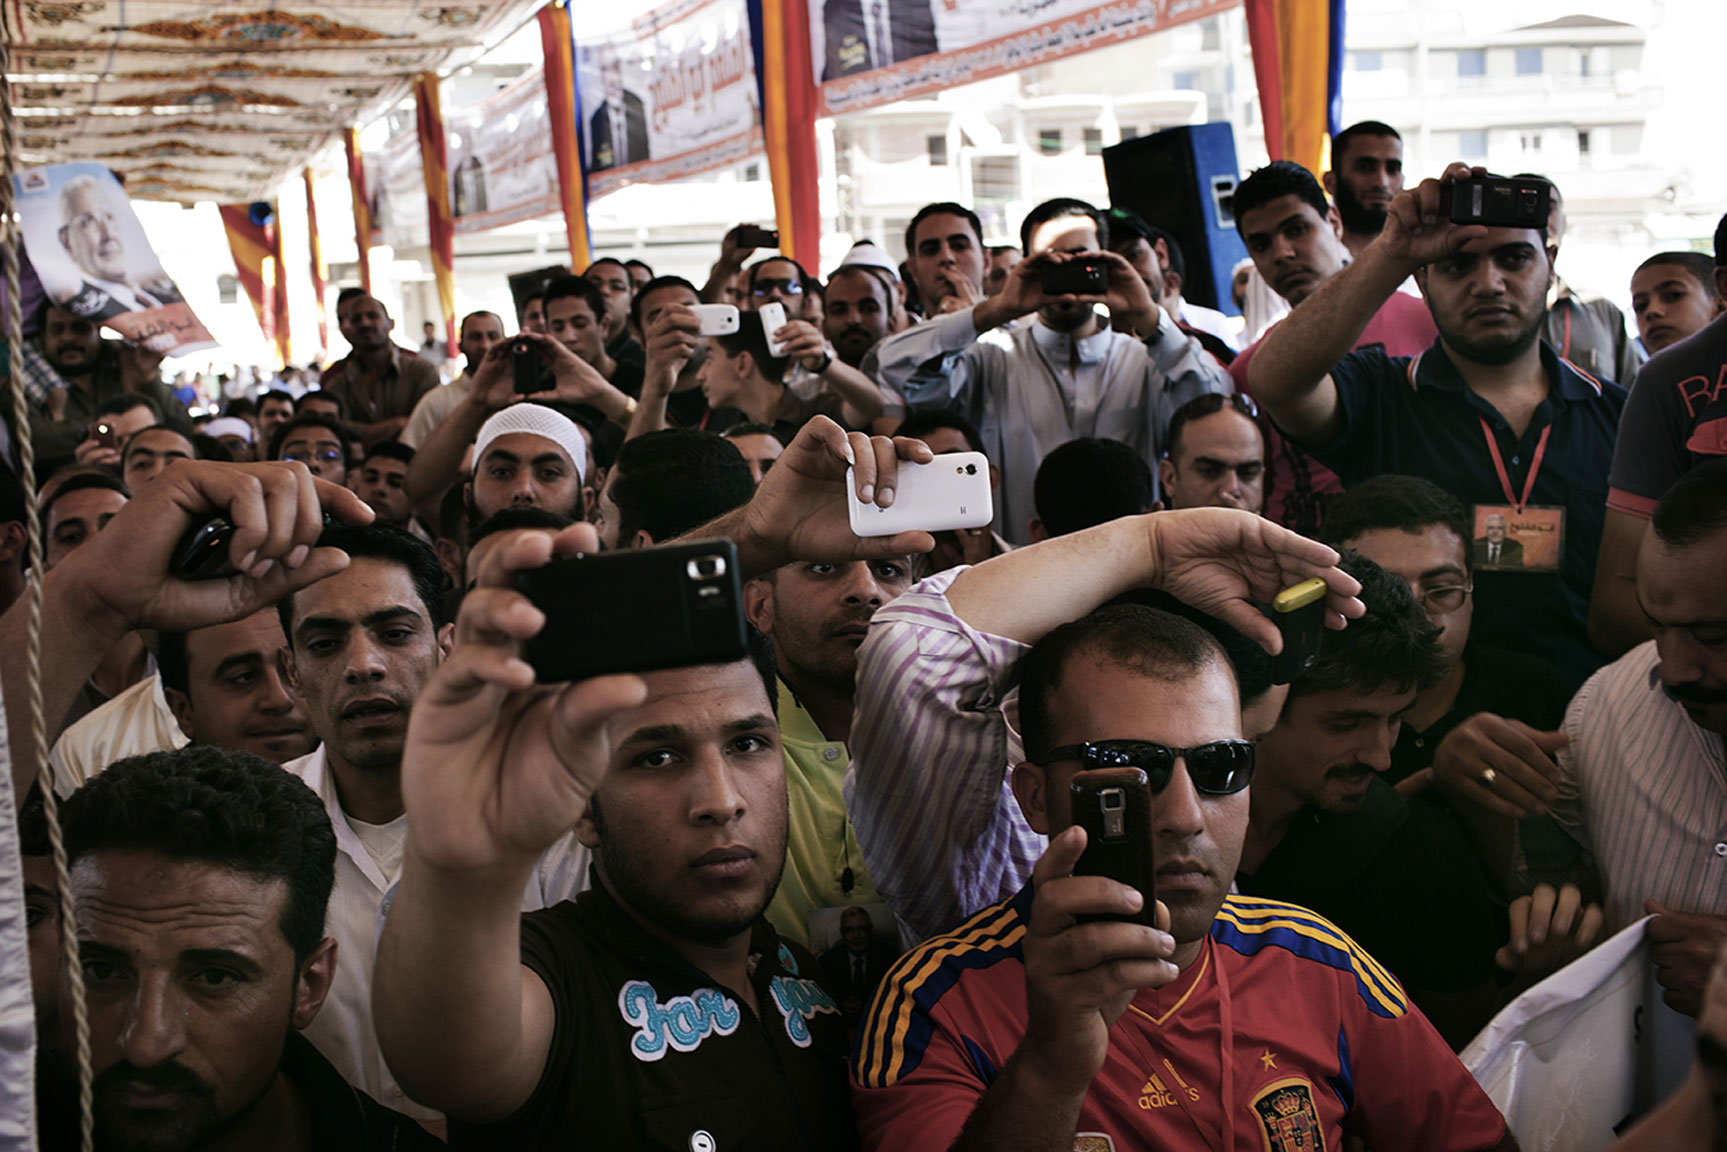 EGYPT_ELECTIONS_PRESIDENTIAL_20120511_636-copy.jpg